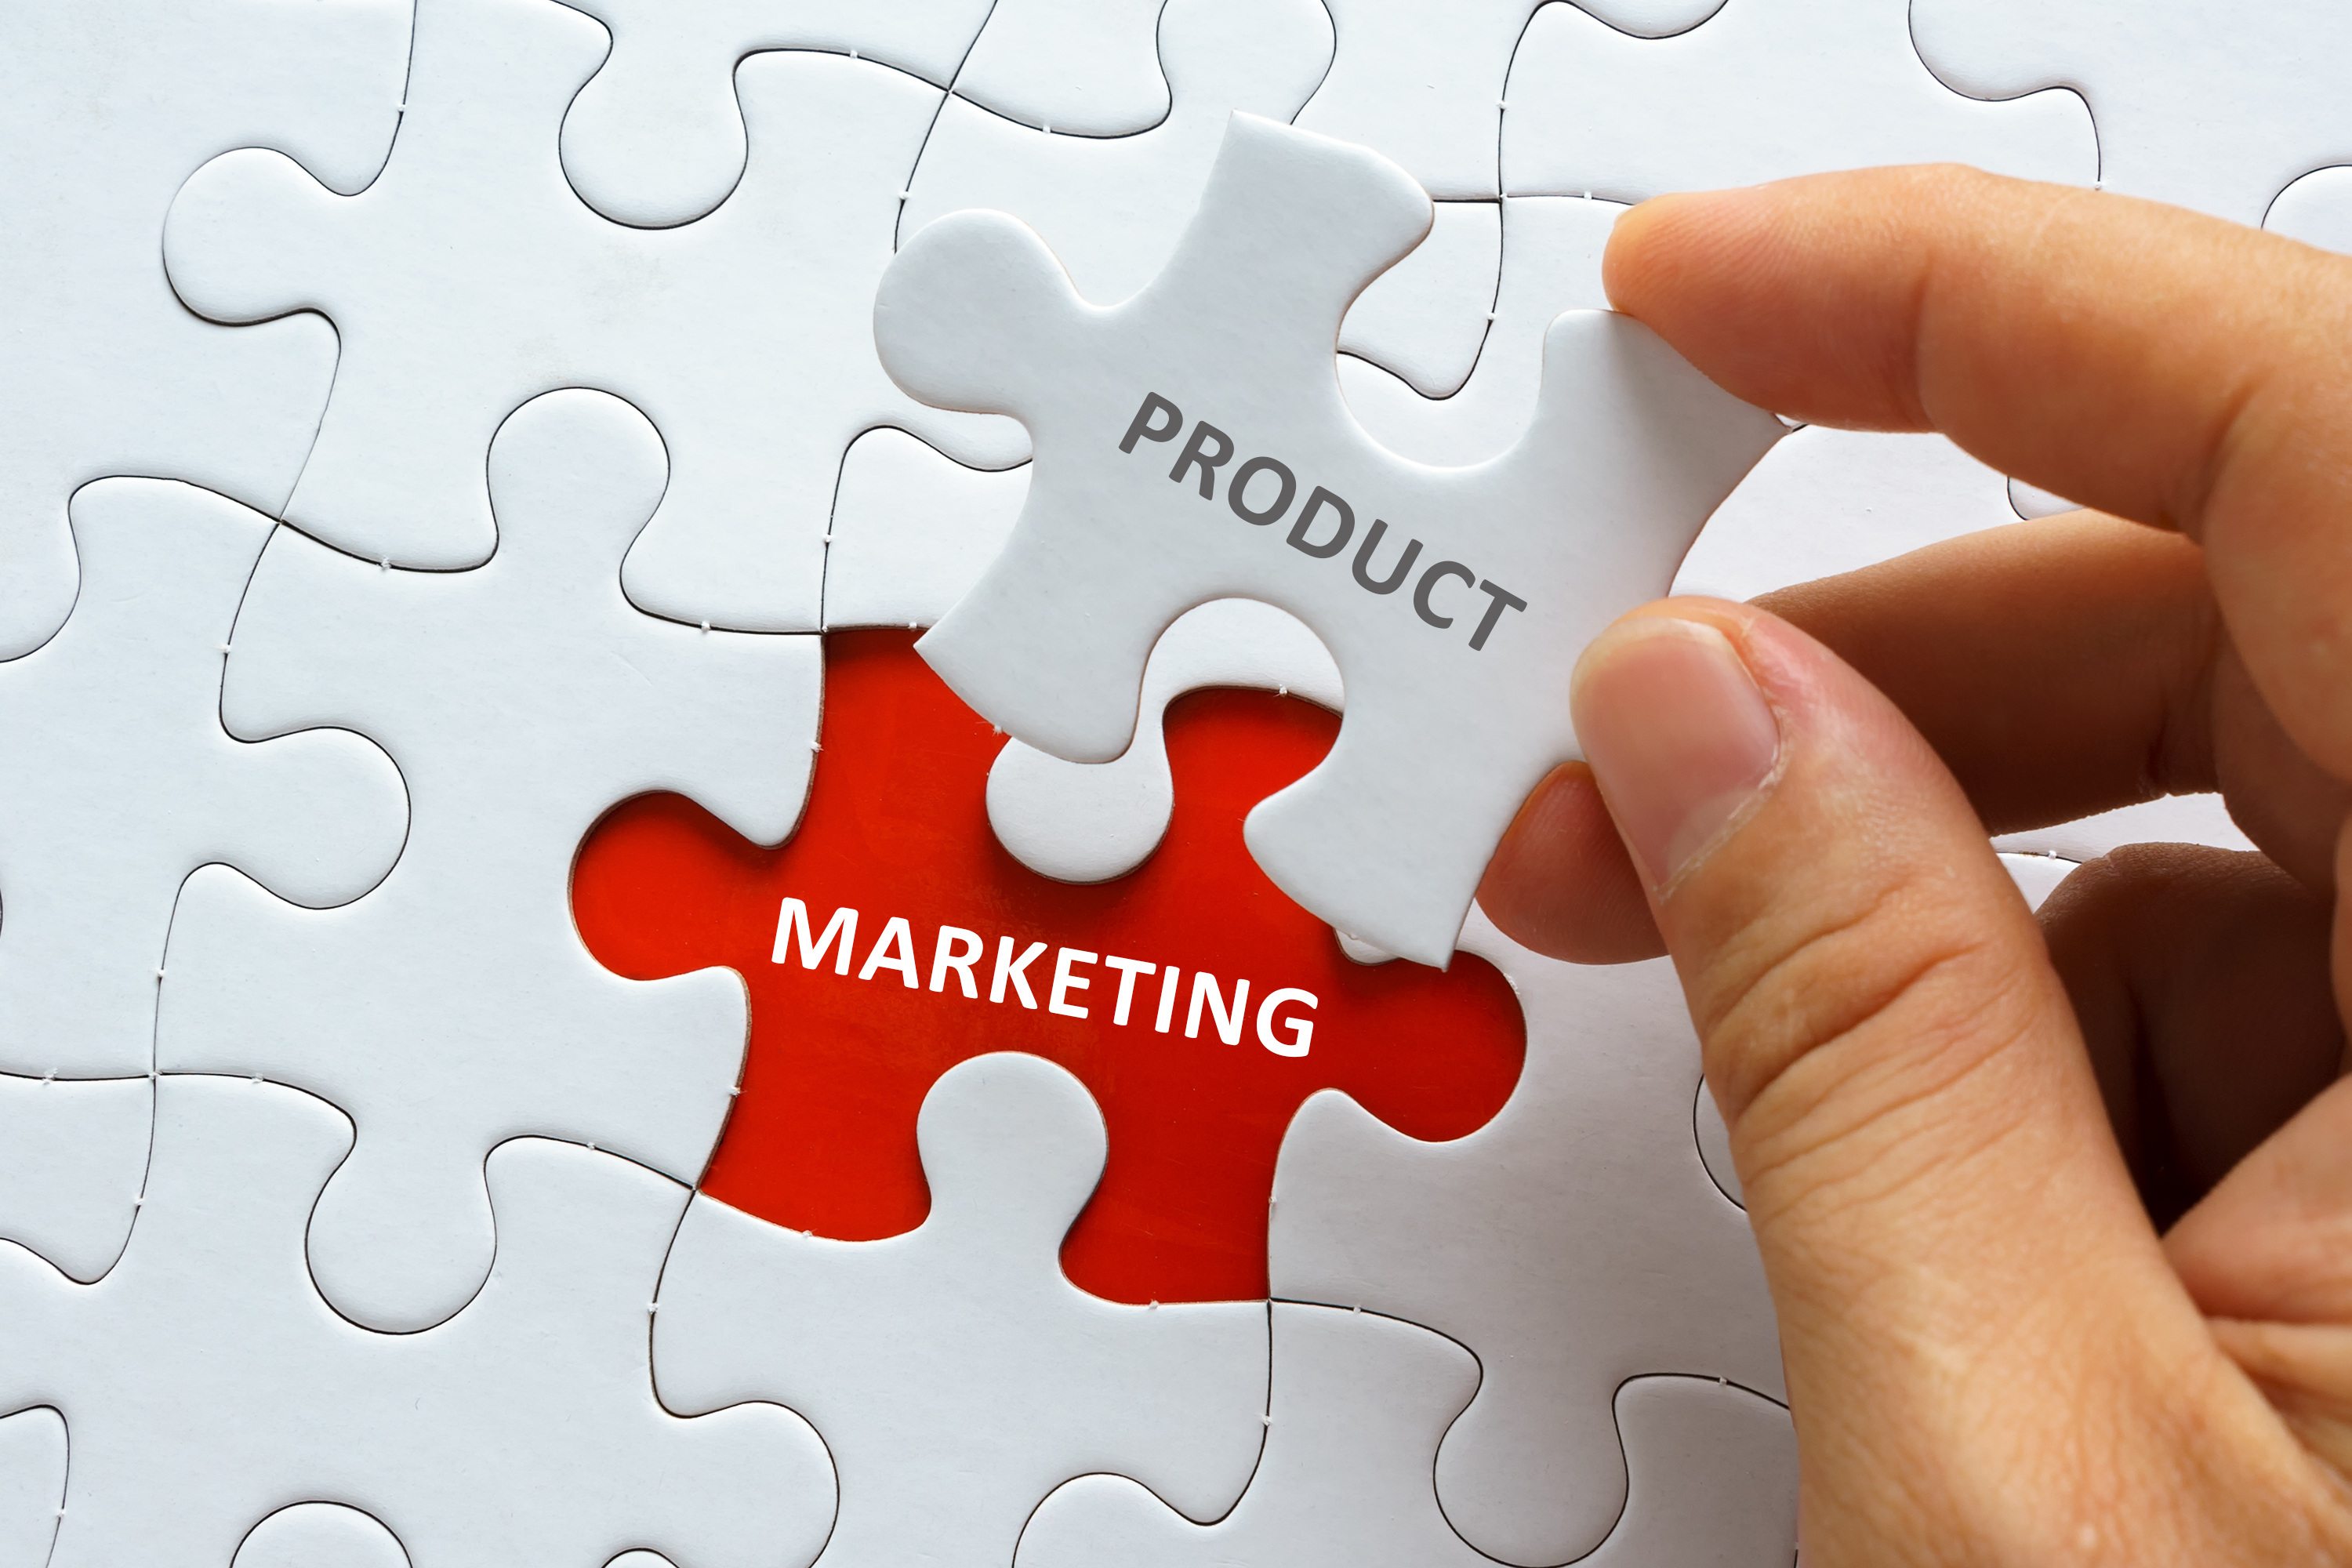 product - marketing mix